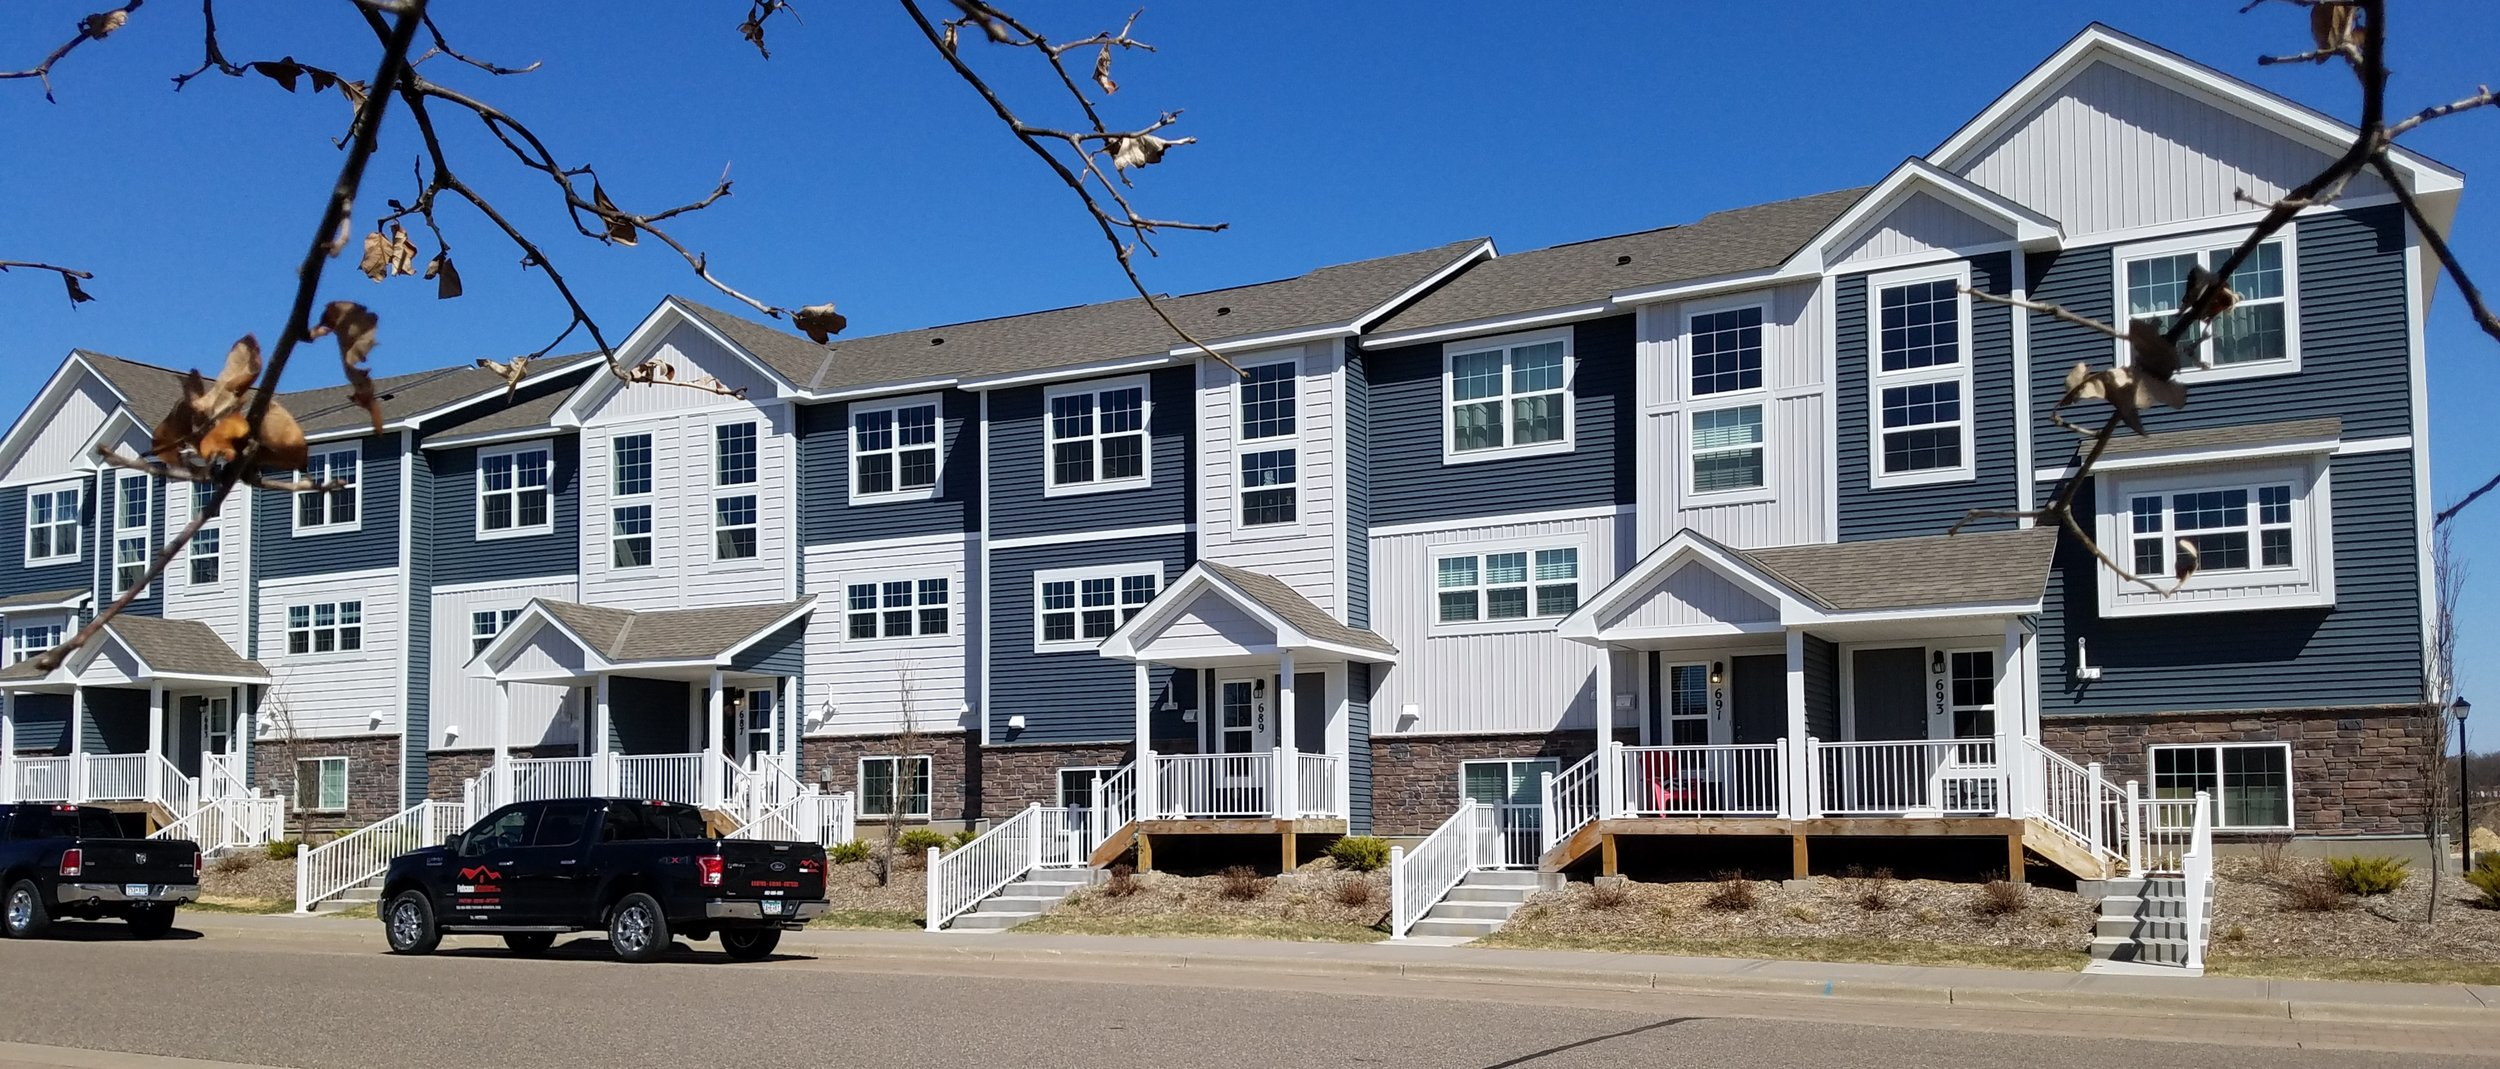 Townhomes- Lino Lakes, MN